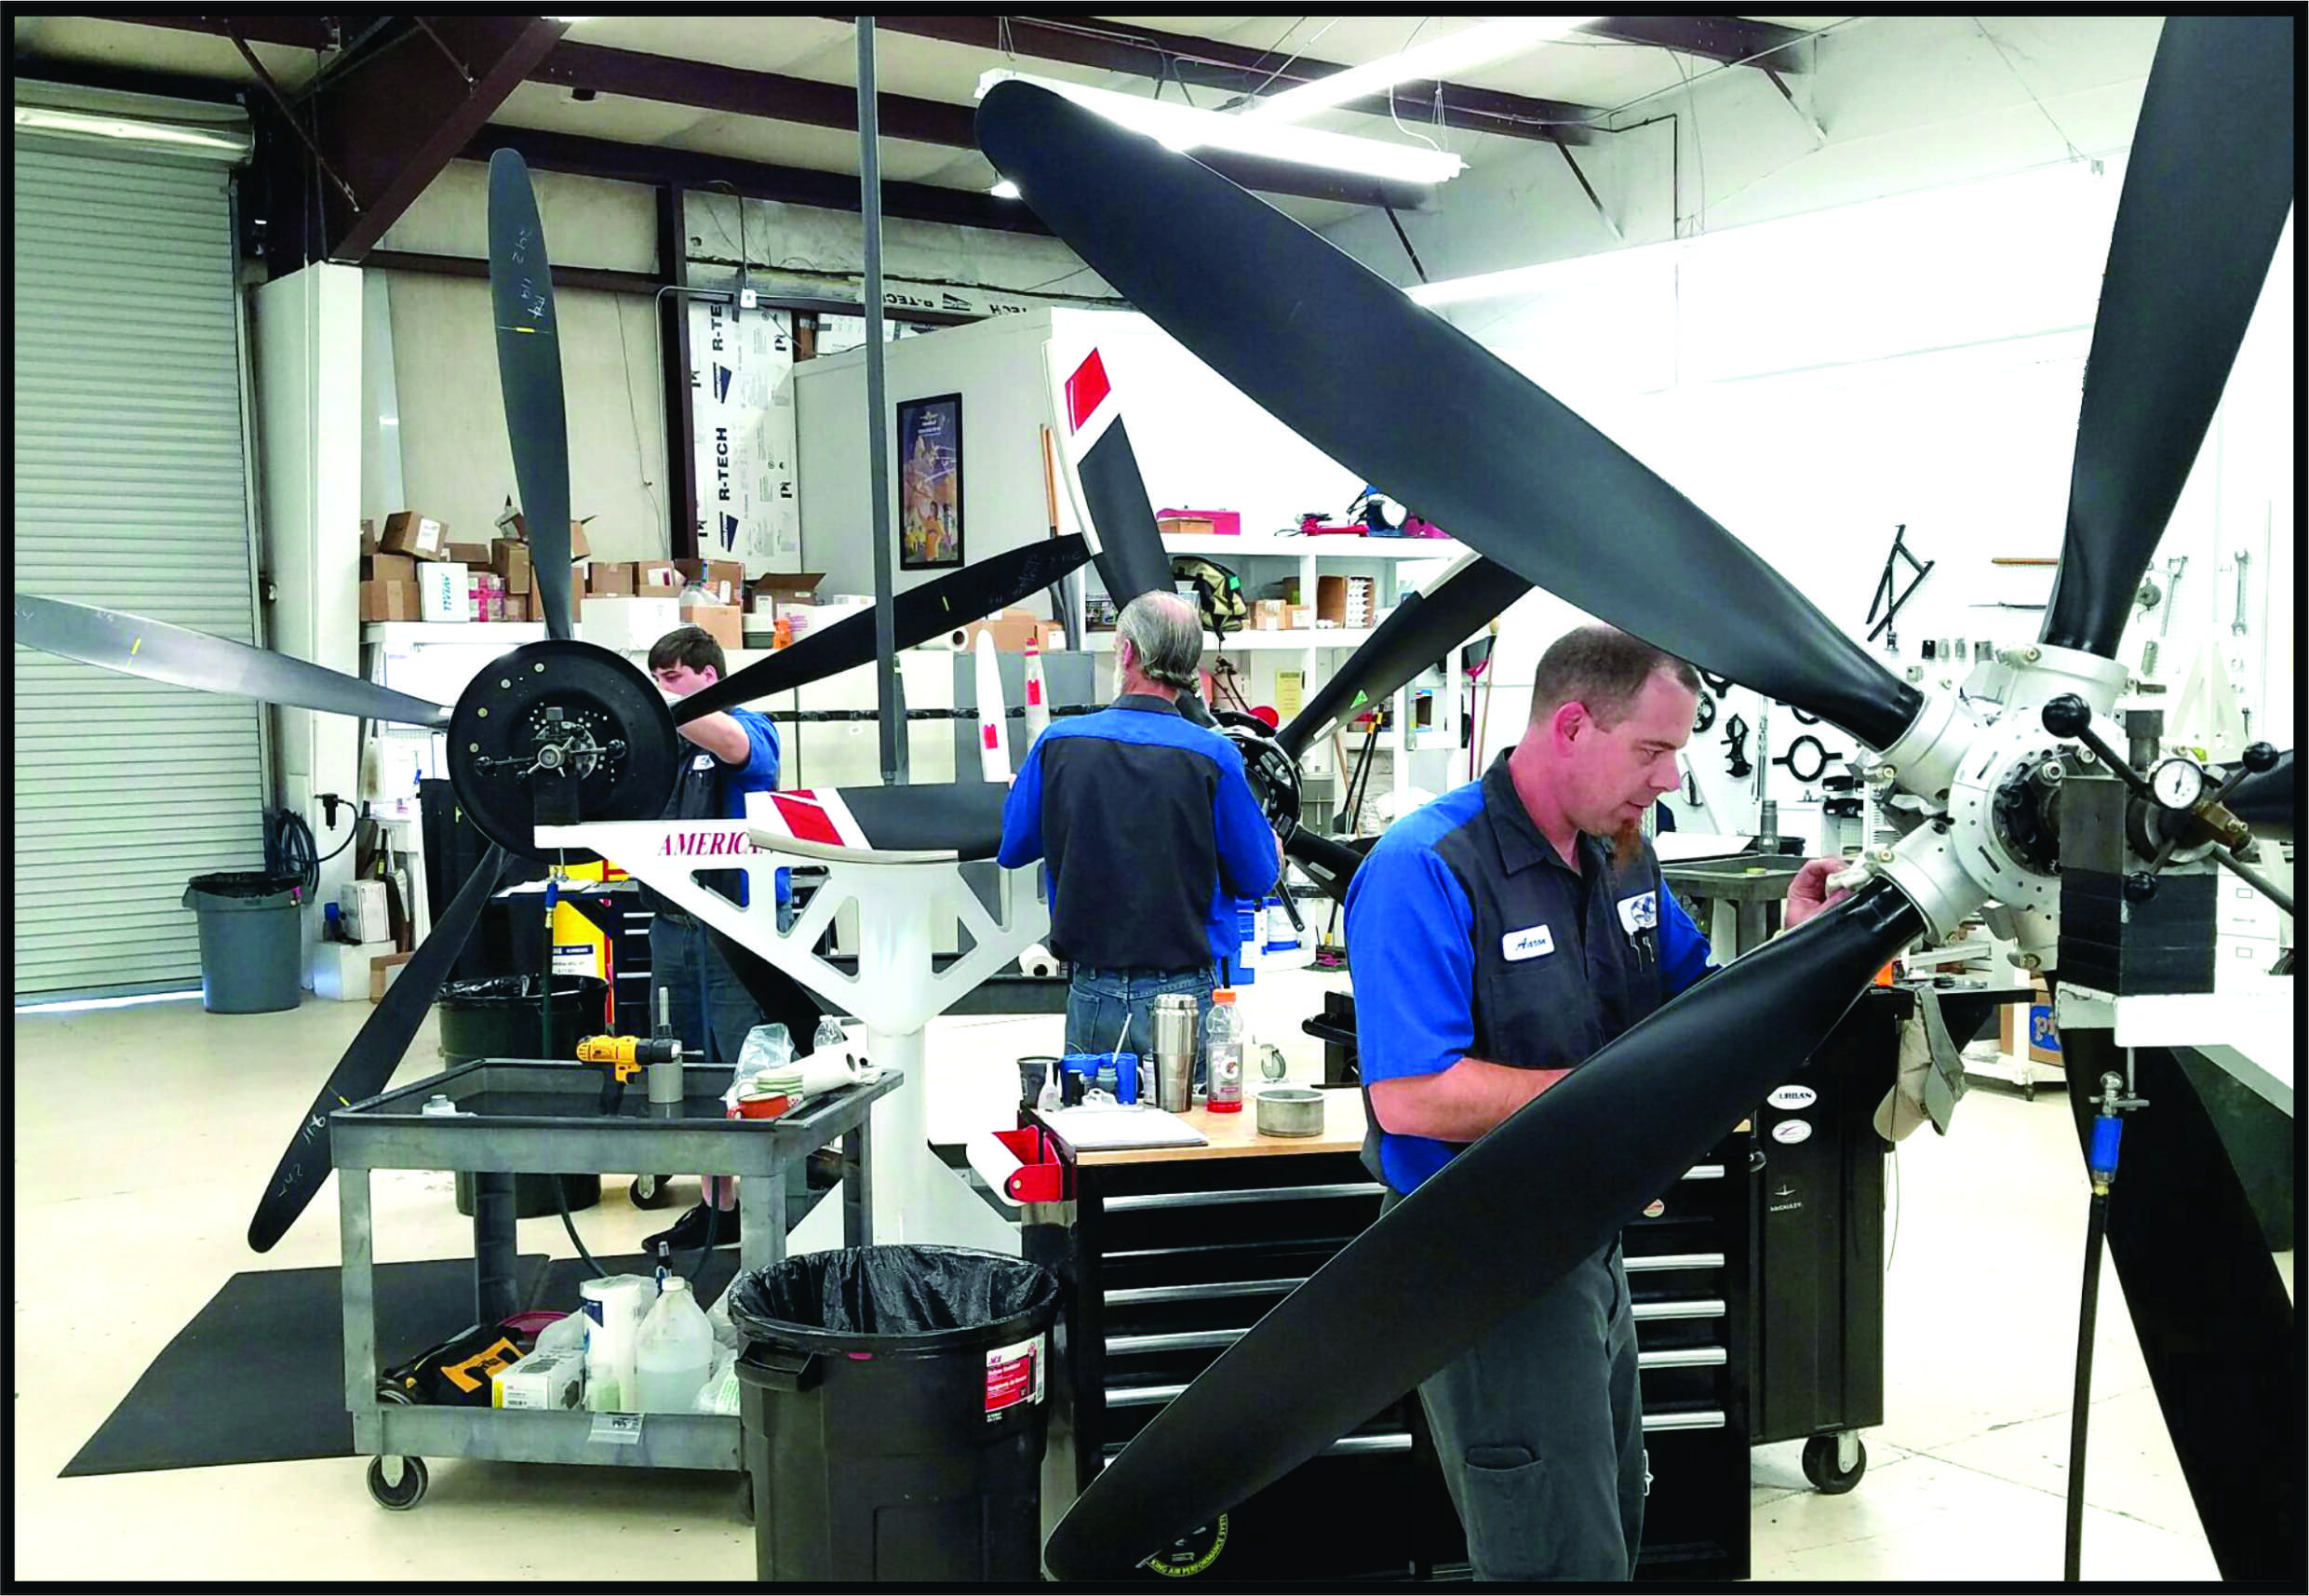 Aircraft Propeller Overhaul Shop, Service, Sales, and